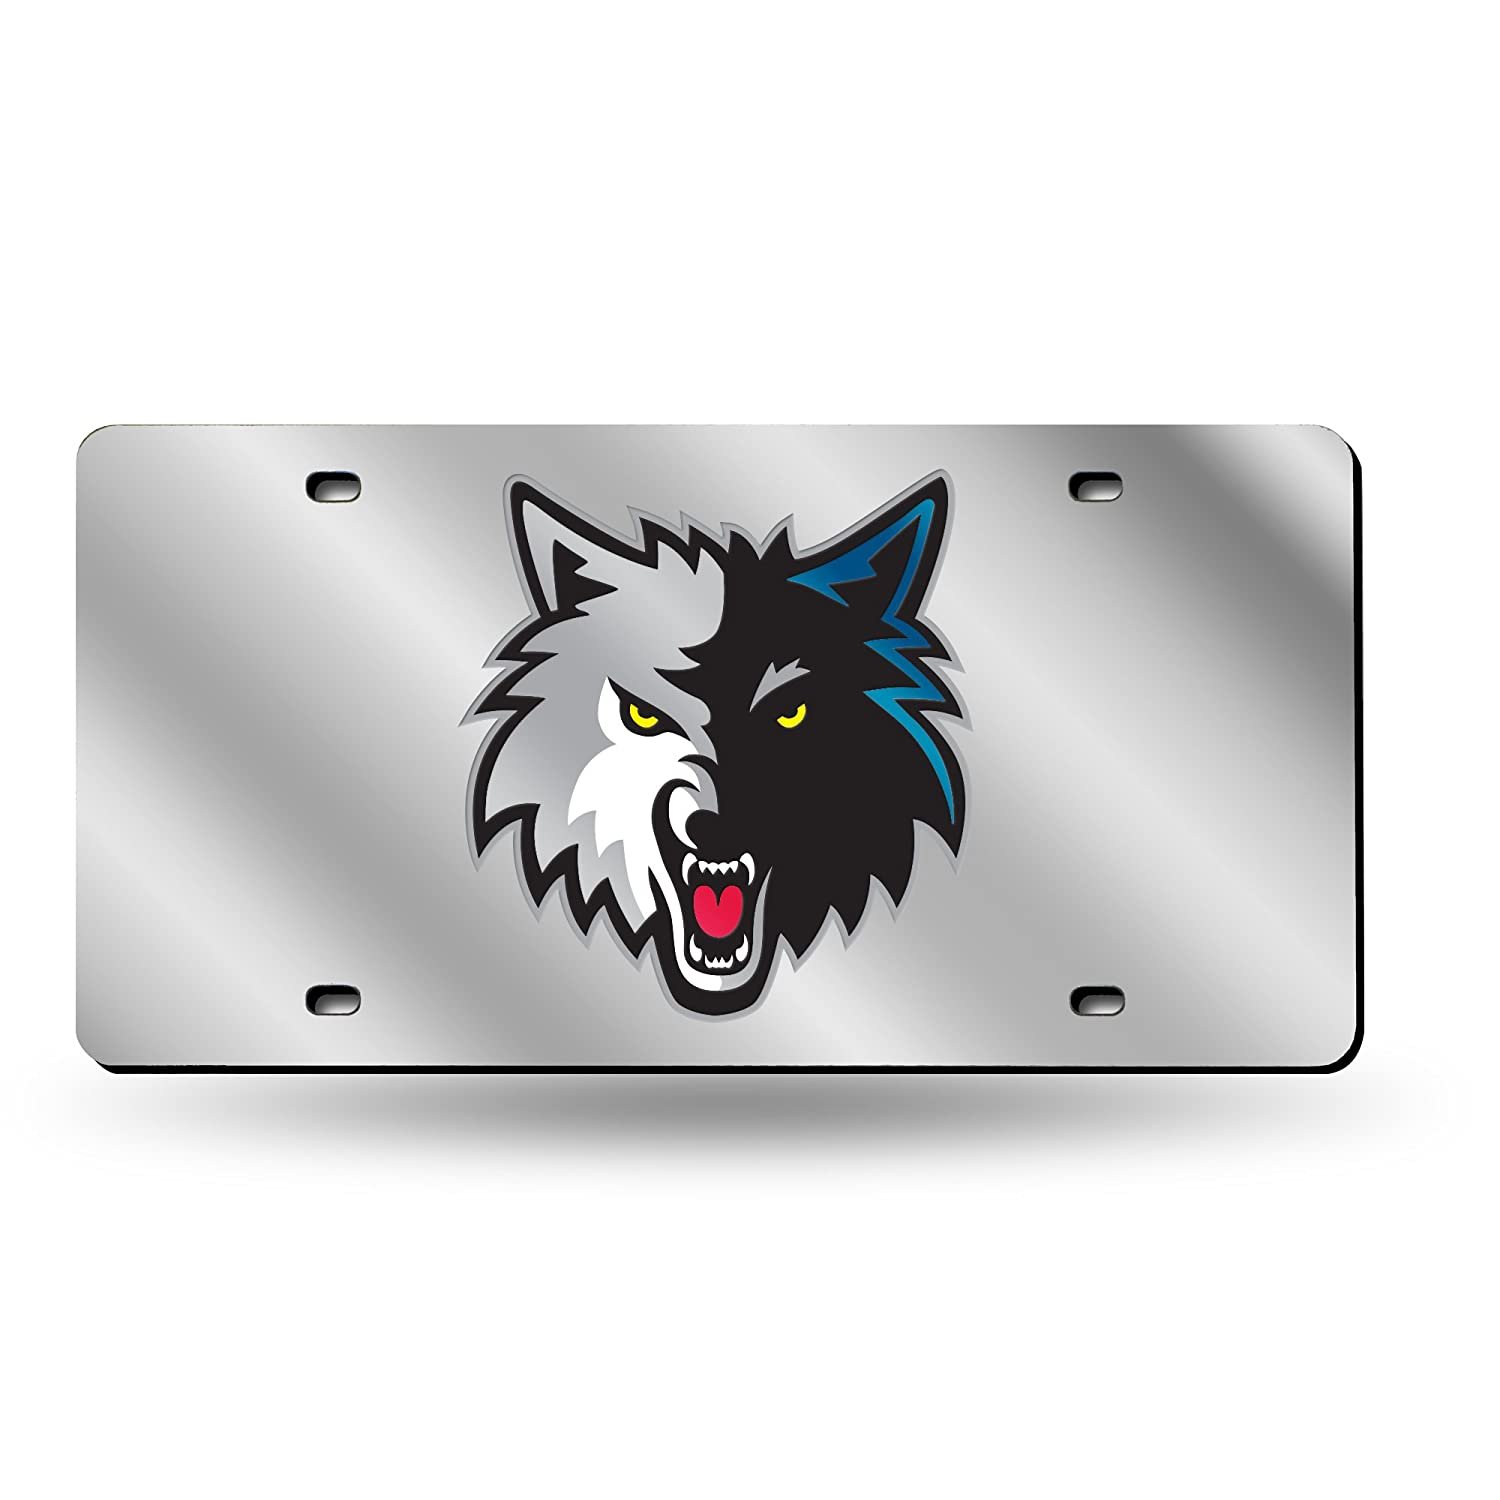 Silver One Size Rico Industries Inc NBA Laser Inlaid Metal License Plate Tag LZS68001